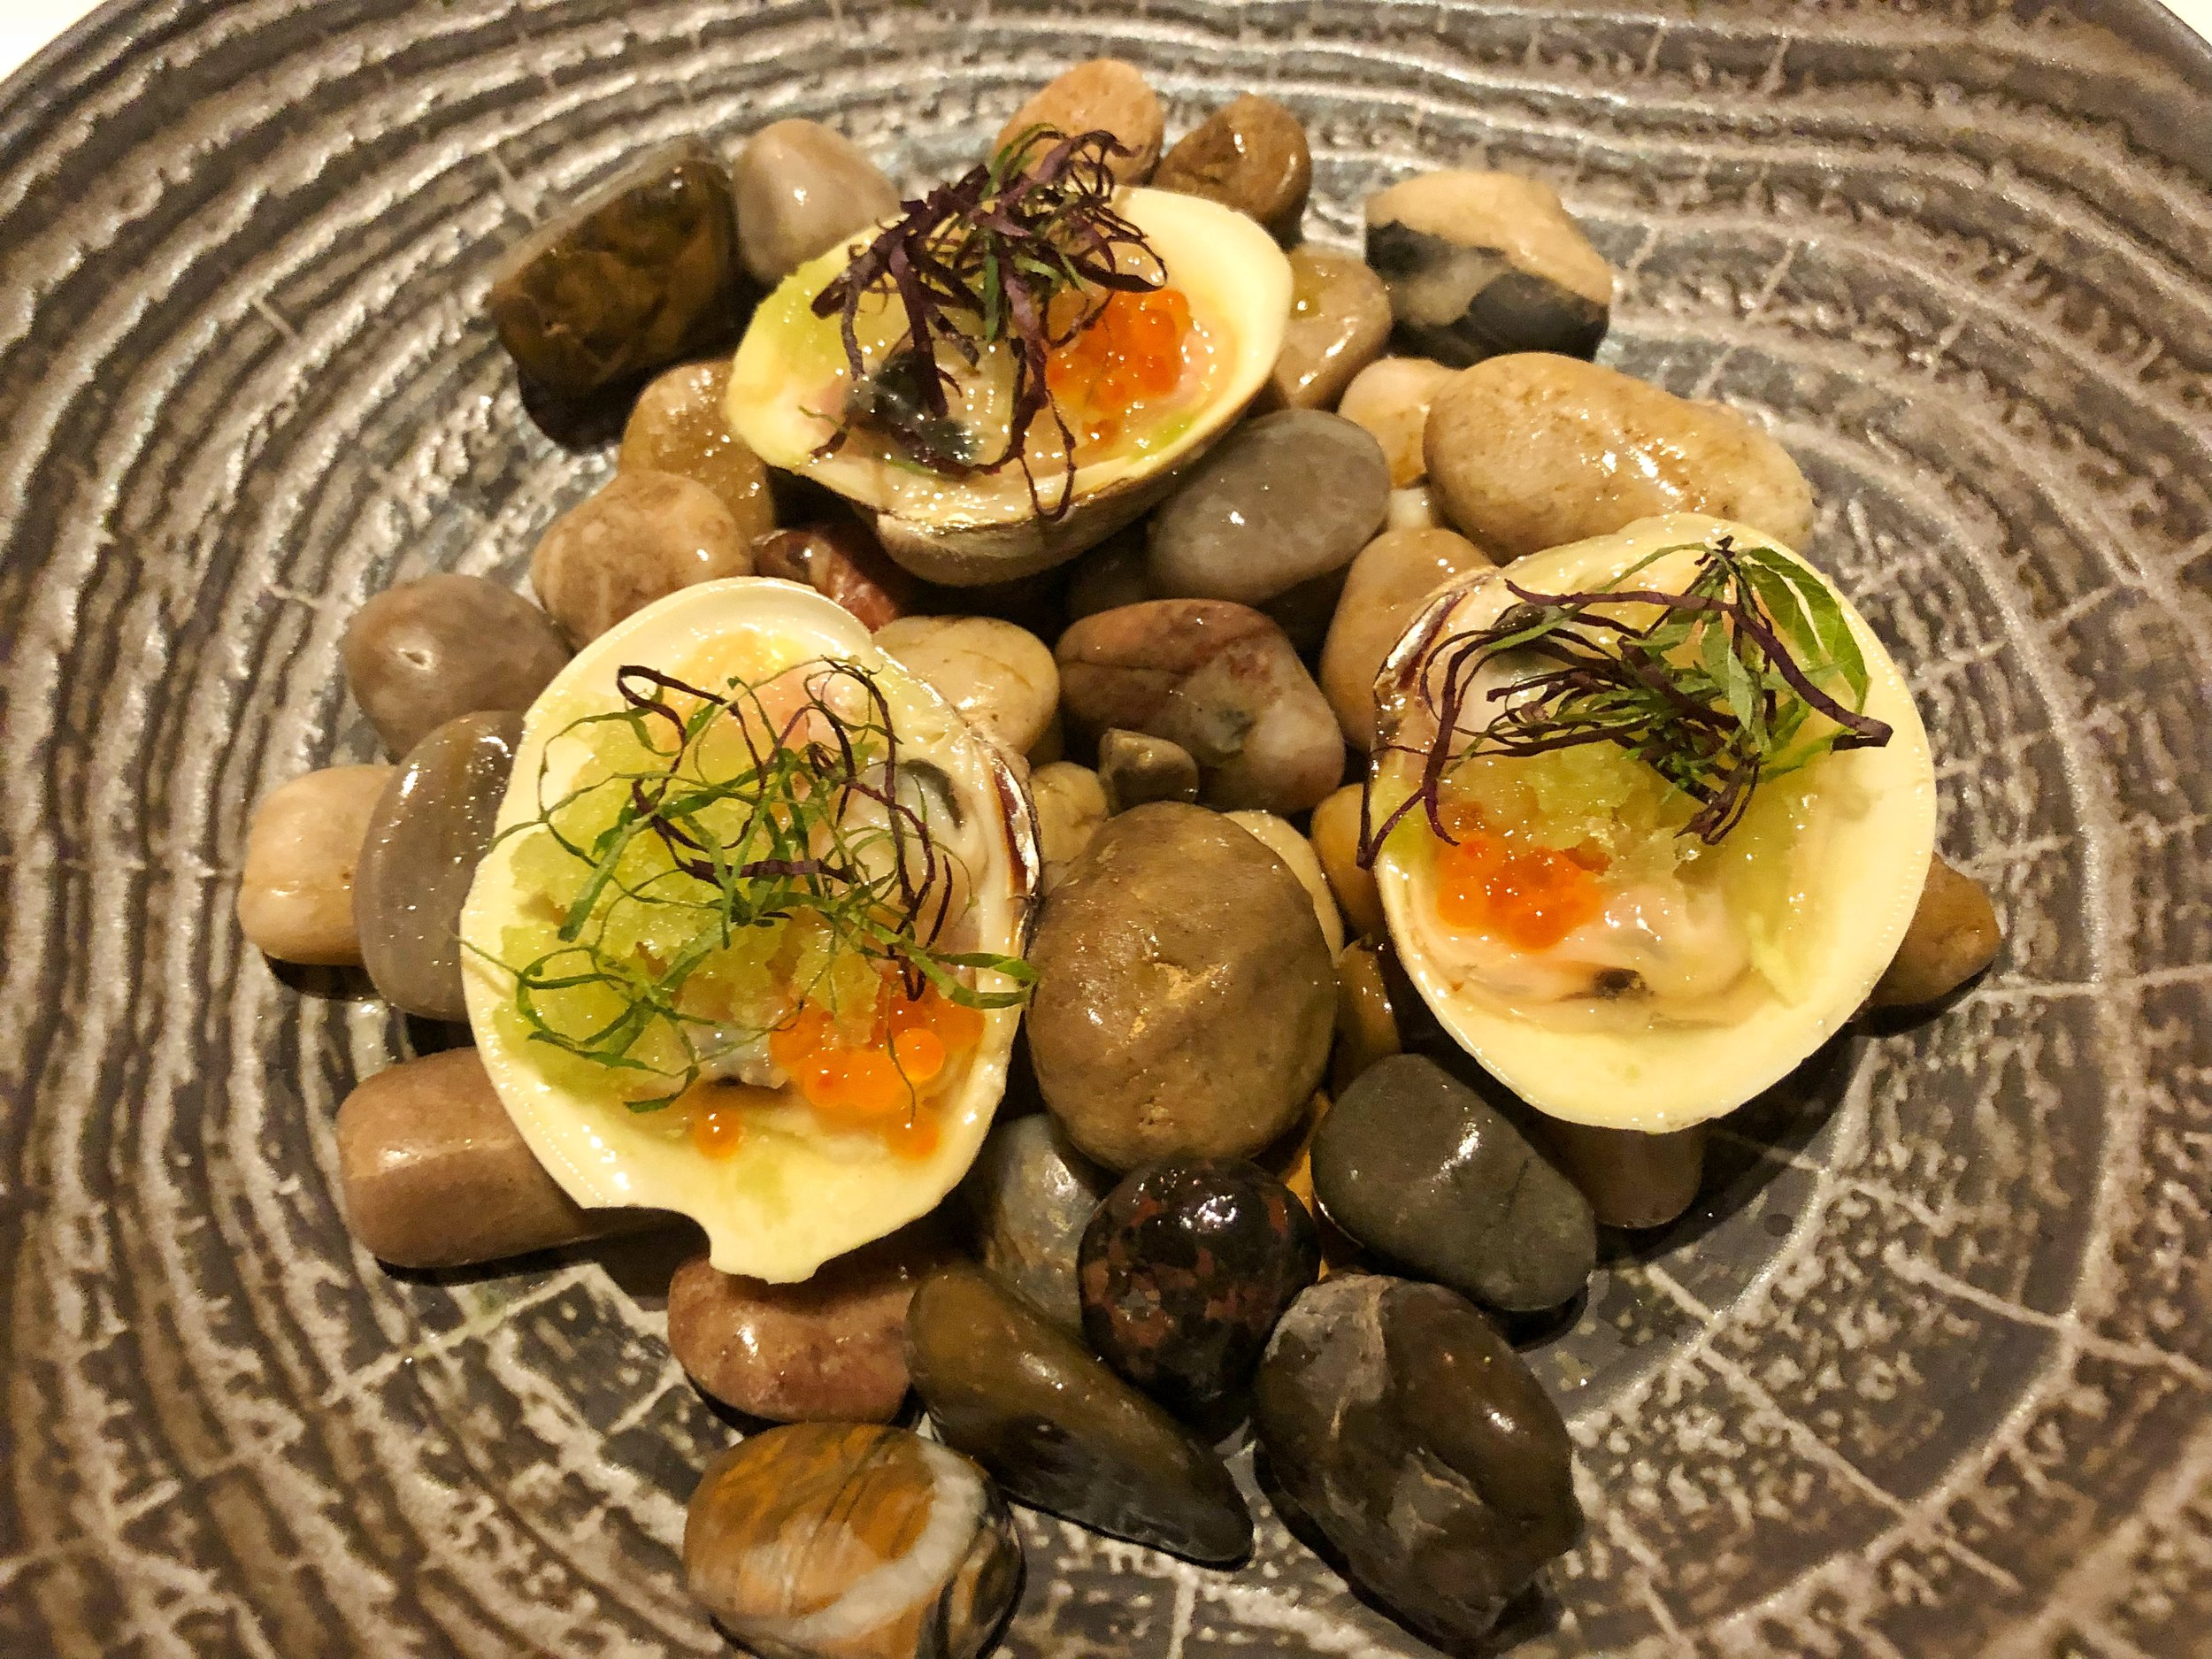 John's River oysters, cucumber granite and smoked trout roe